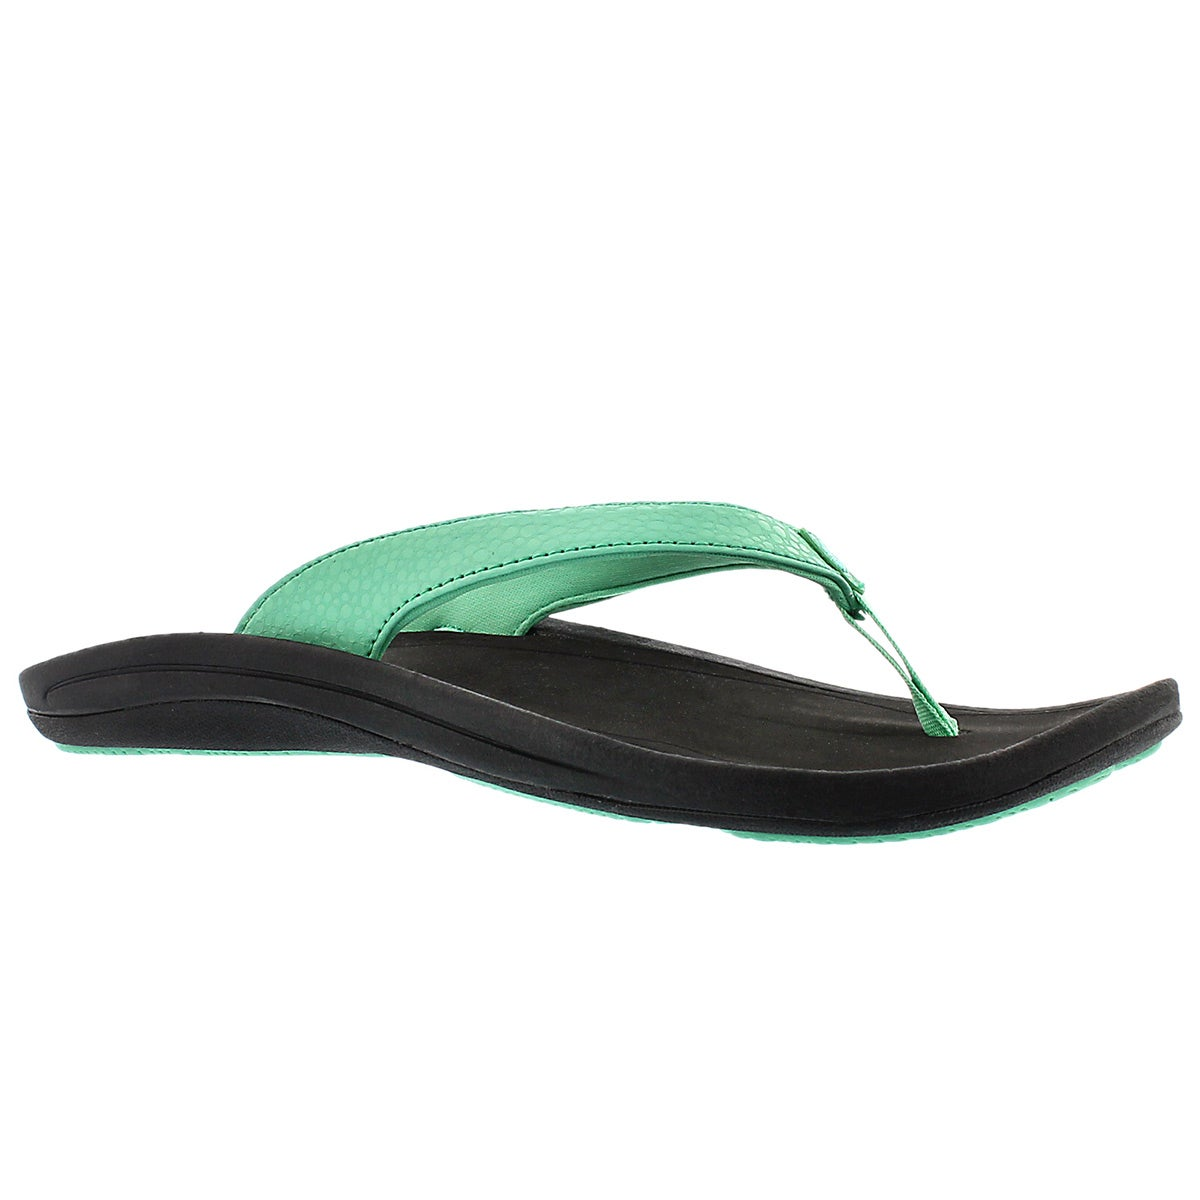 Women's KULAPA KAI pale jade thong sandals